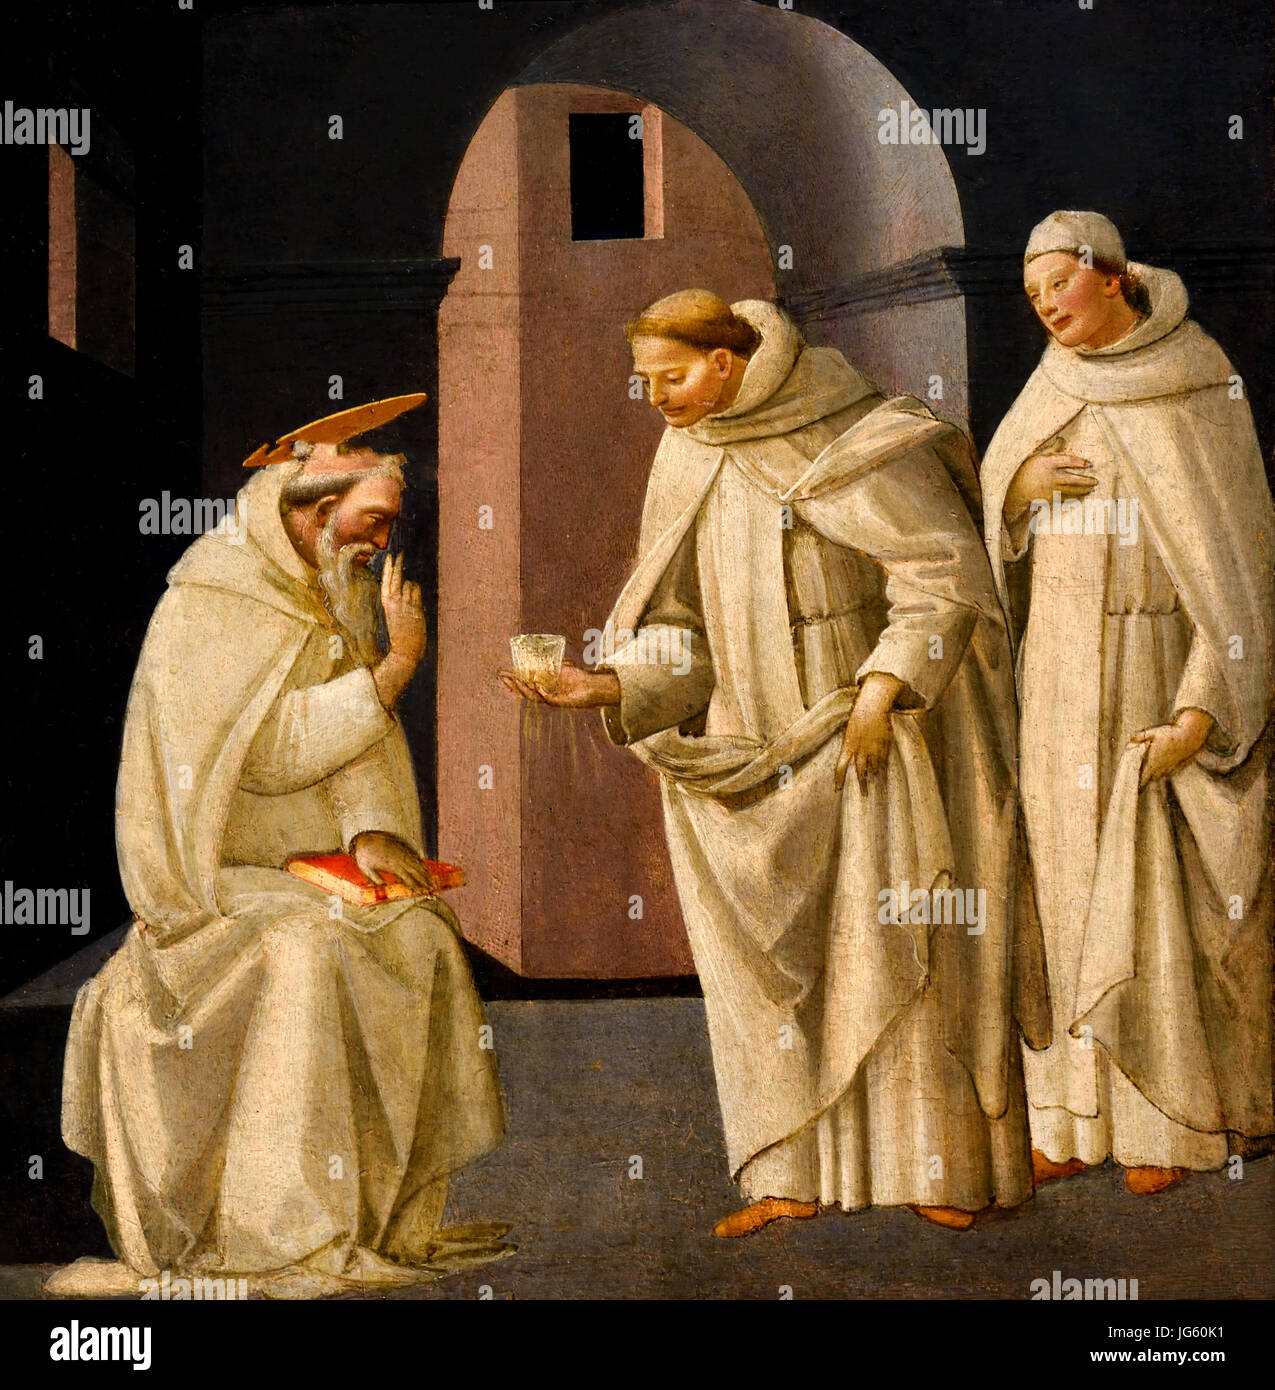 St Benedict Blesses the Poisoned Wine 148501990  1485 Bartolomeo di Giovanni active 1488 - about 1500 Florence Italy - Stock Image